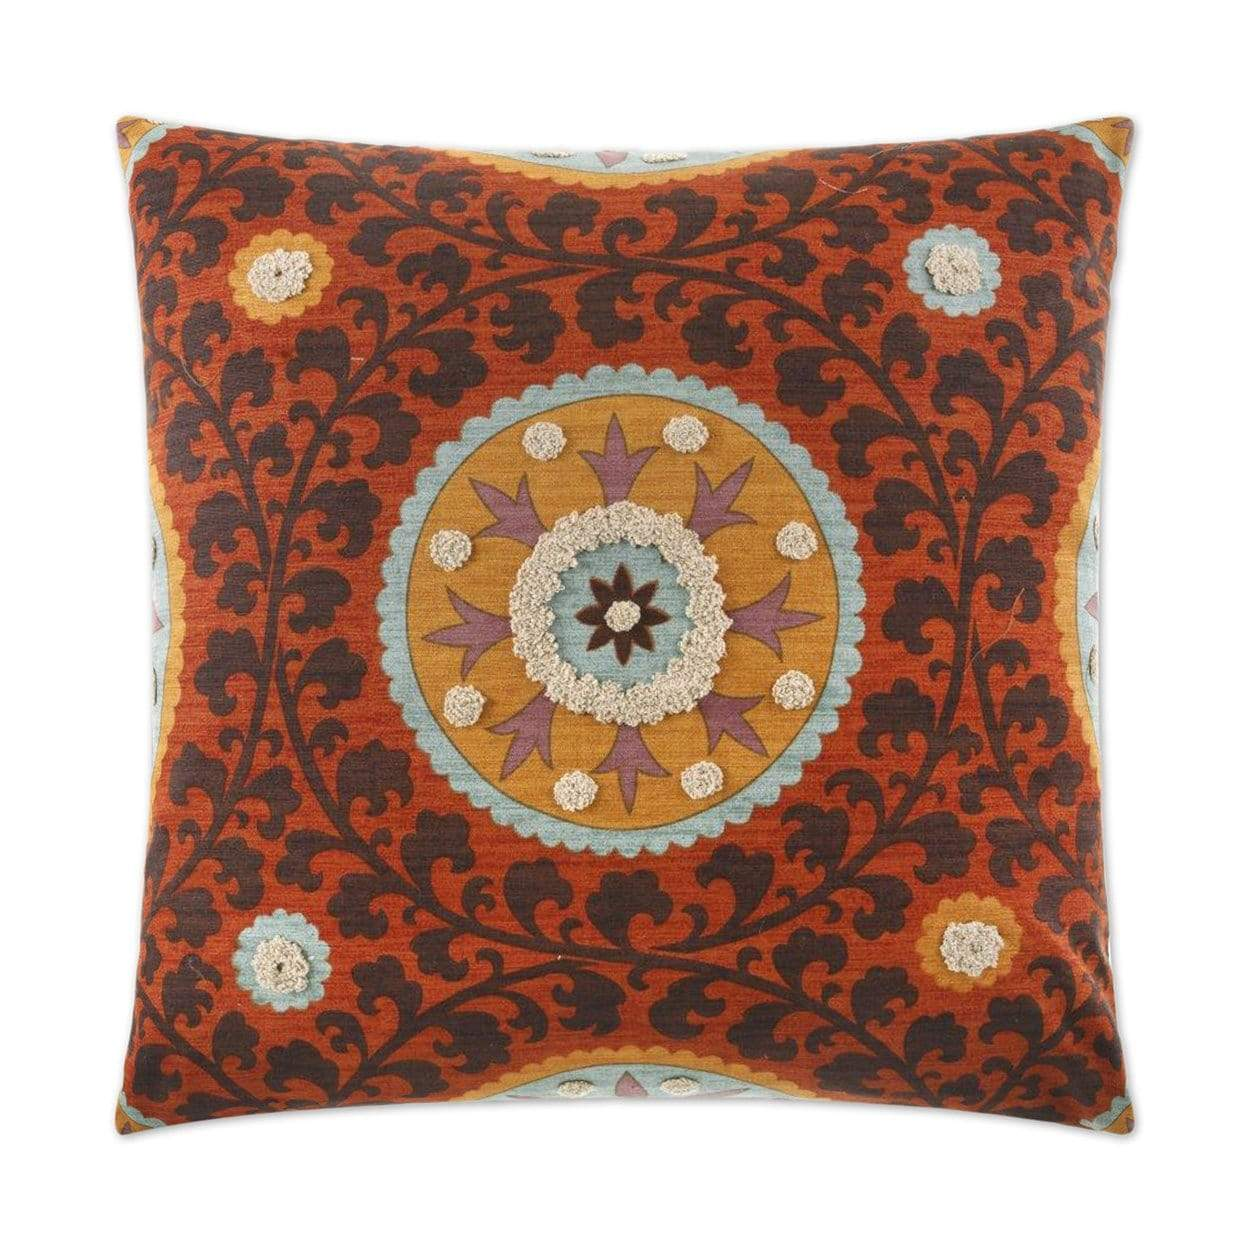 D.V. Kap D.V. Kap Tribal Thread Pillow - Available in 2 Colors Blue 2077-B